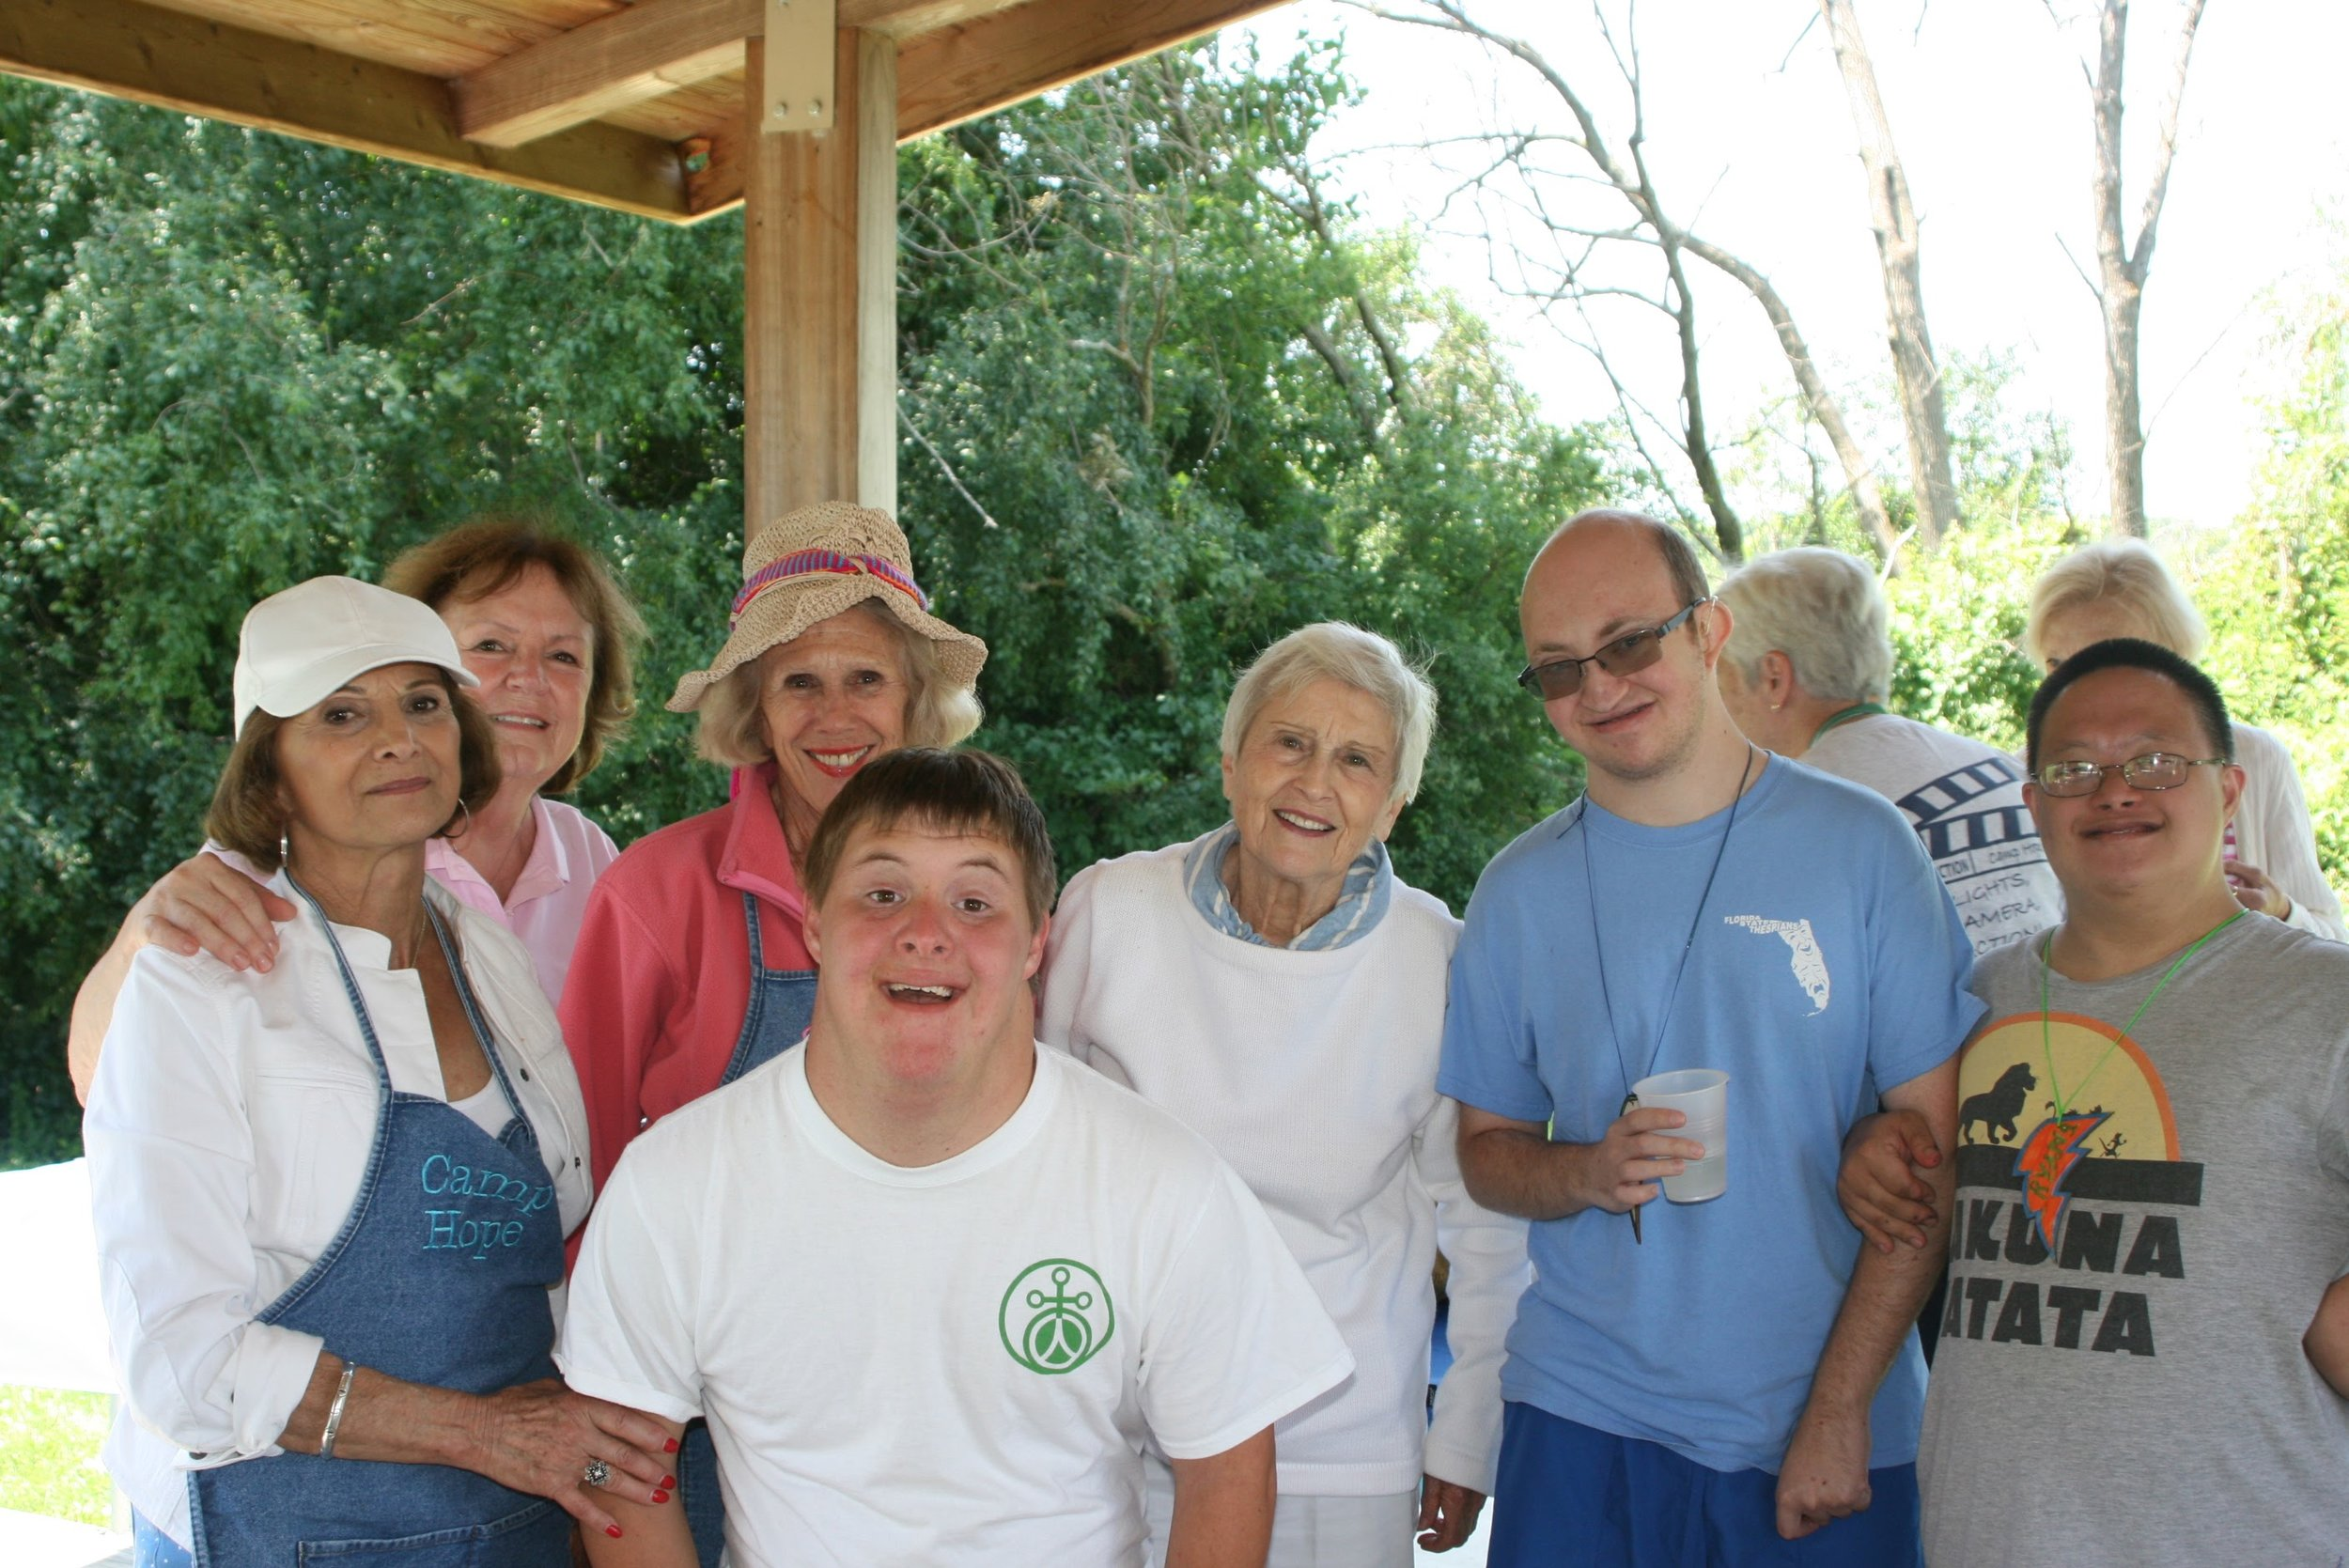 THE COMMUNITY - To promote community involvement and ecumenical harmony by encouraging the participation of various community groups and organizationsCamp Hope provides many outlets for community involvement. Anyone can become involved in Camp Hope by providing meals, offering services, or giving time as a volunteer during a camp session. Persons of all faith backgrounds are encouraged to get involved, thereby resulting in ecumenical harmony.